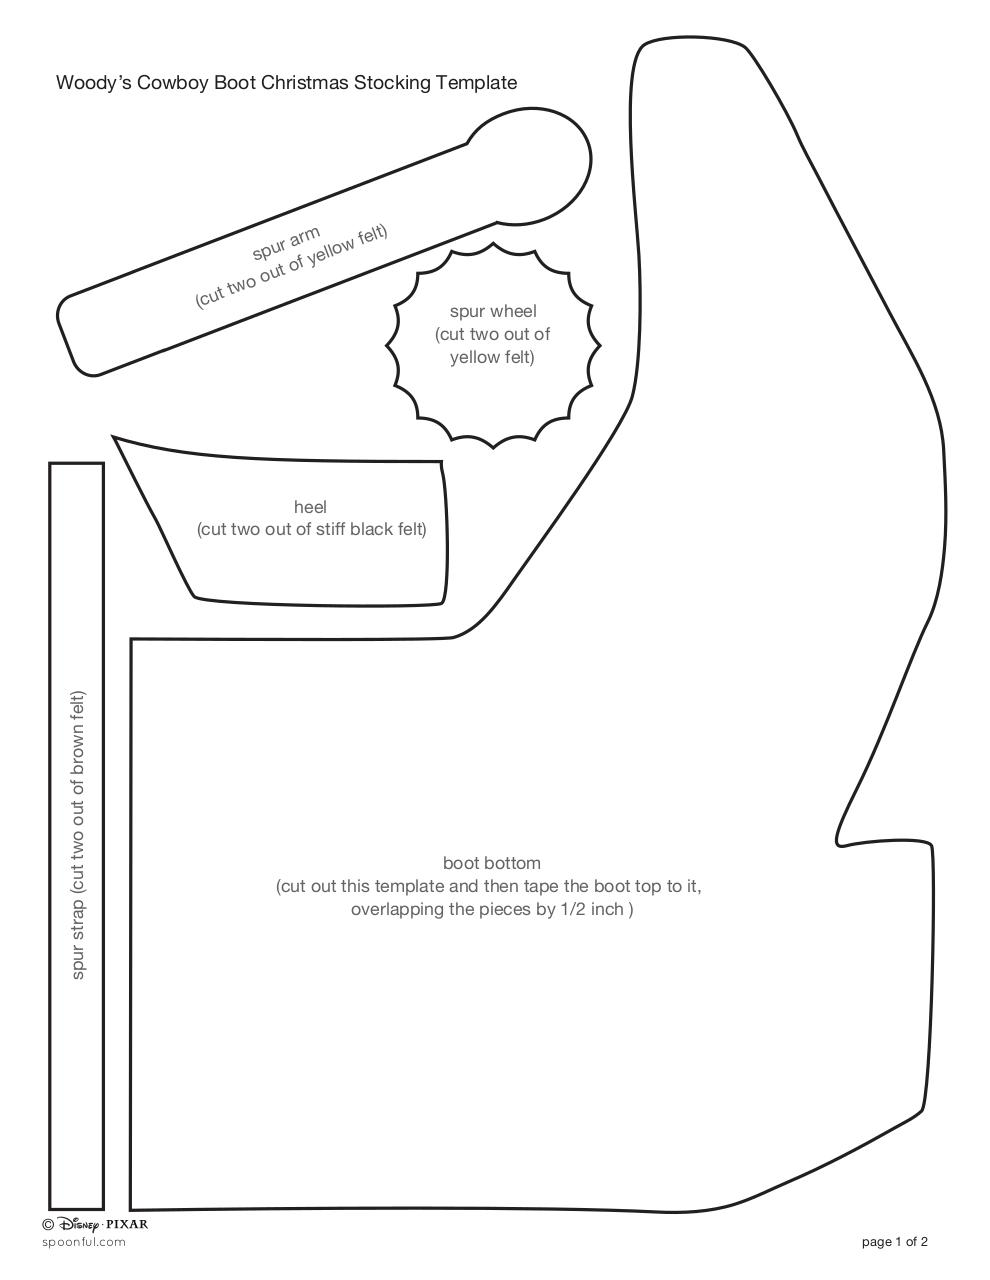 Aperçu du document woodys-cowboy-boot-christmas-stocking-craft-sf-template-0412.pdf - page 1/2